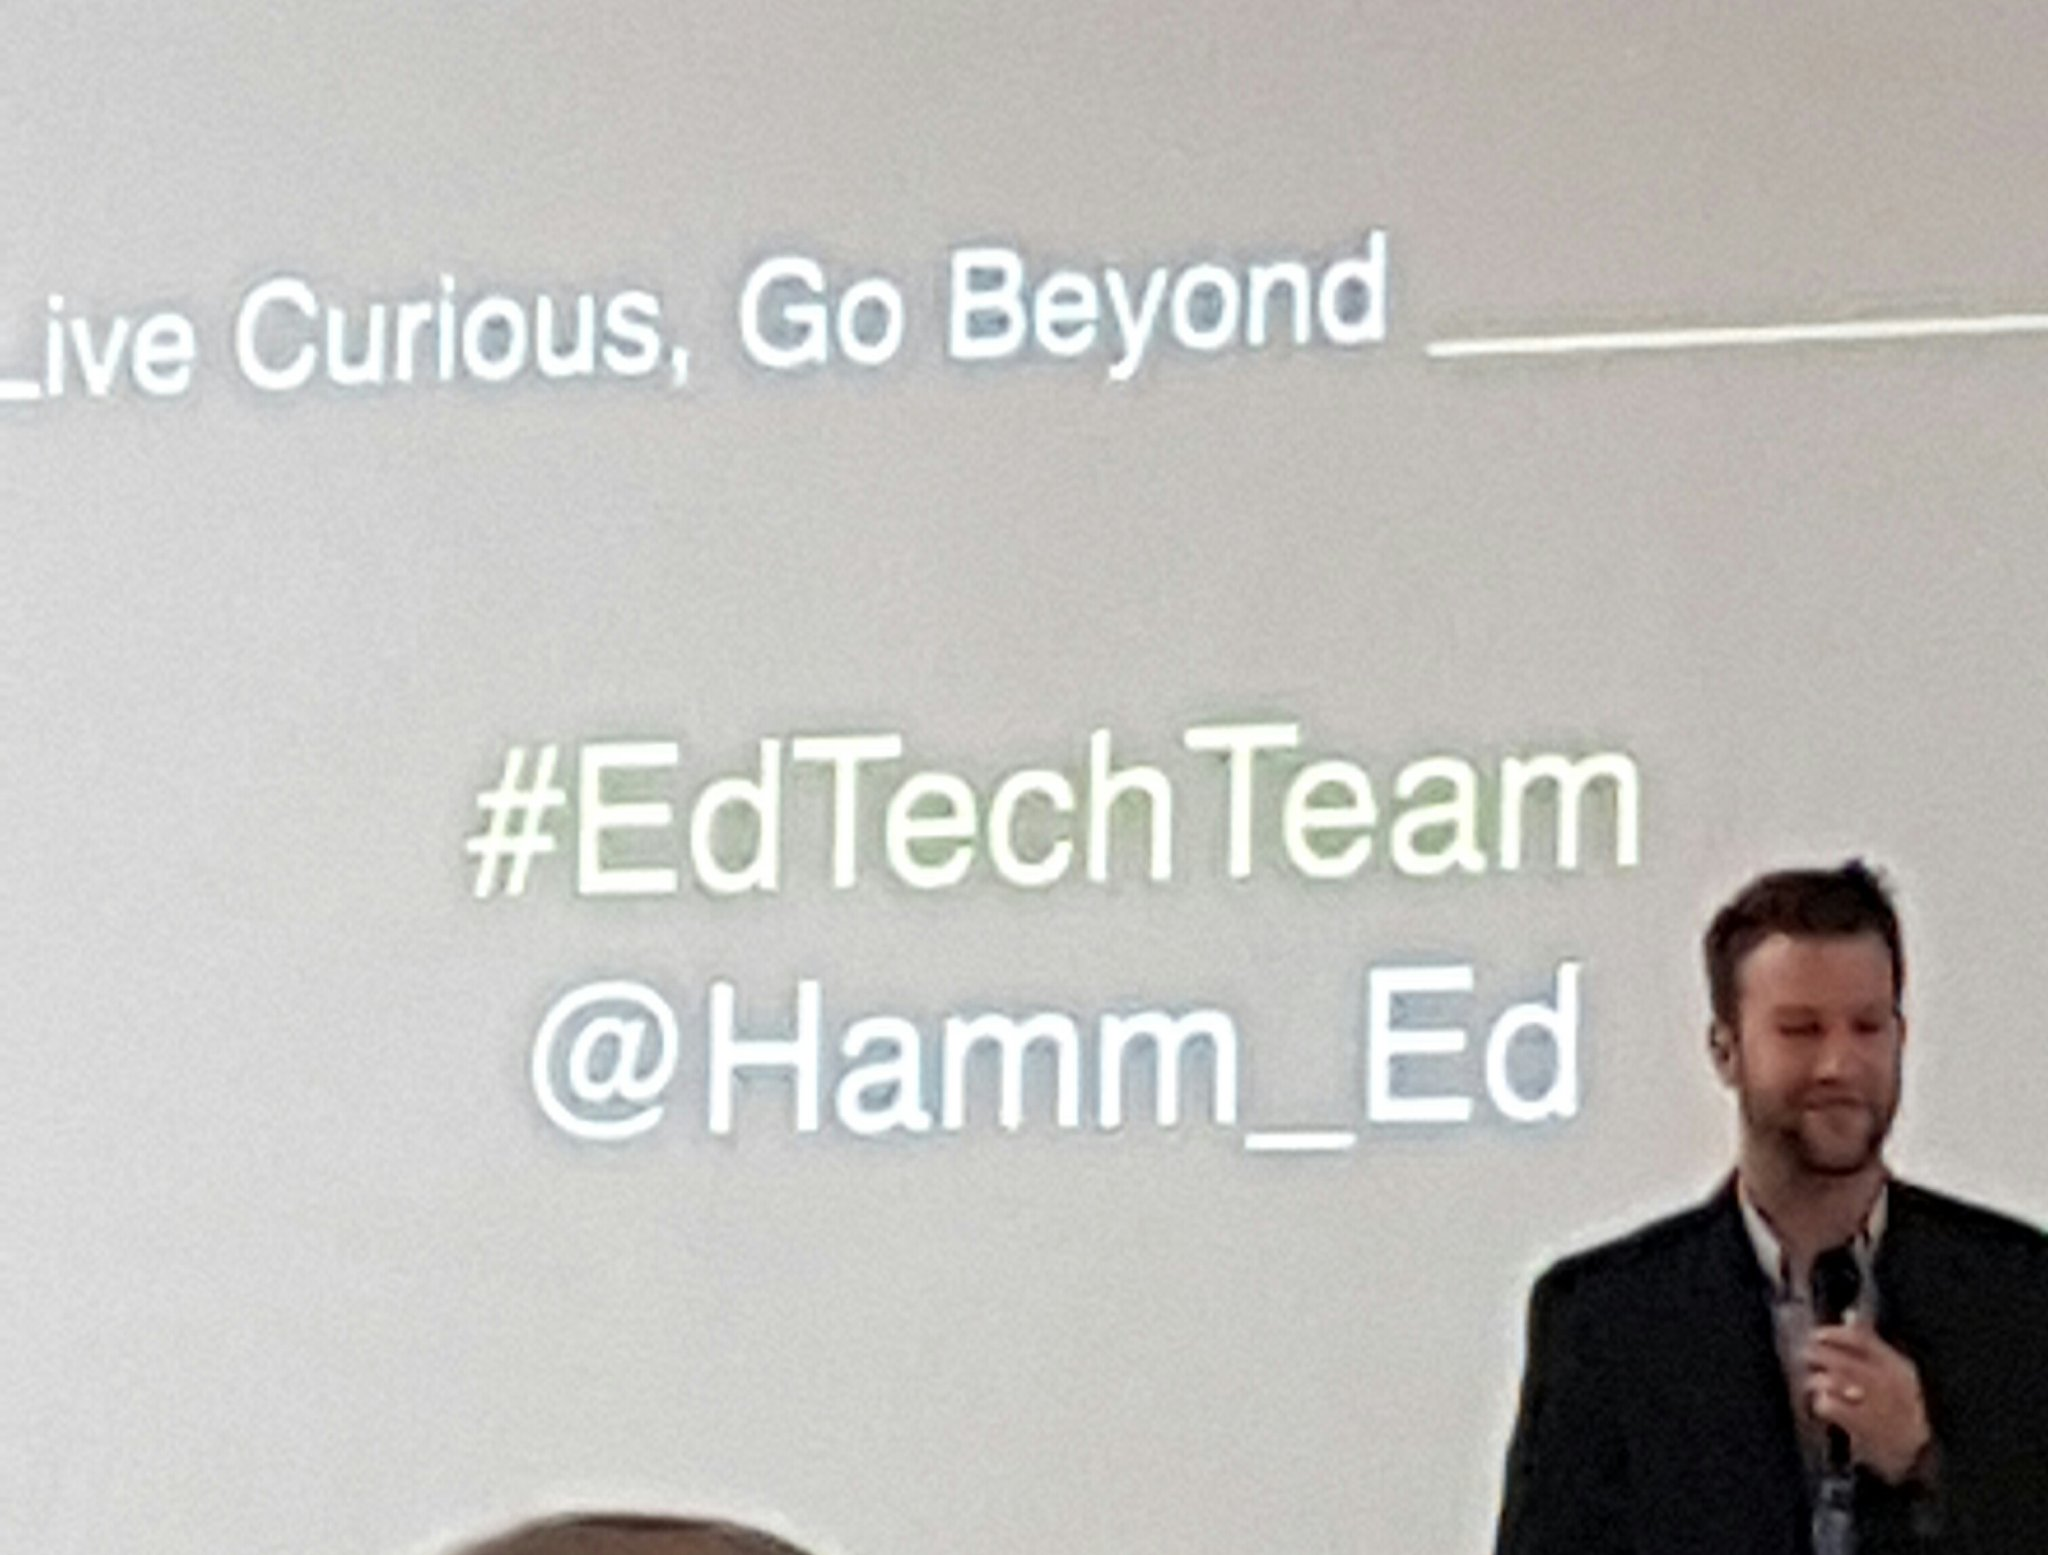 """Create problems that are user focused, not outcome driven."" I will live curious, and go beyond projects! Yes! @Hamm_Ed #edtechteam https://t.co/msTYLlLEj6"